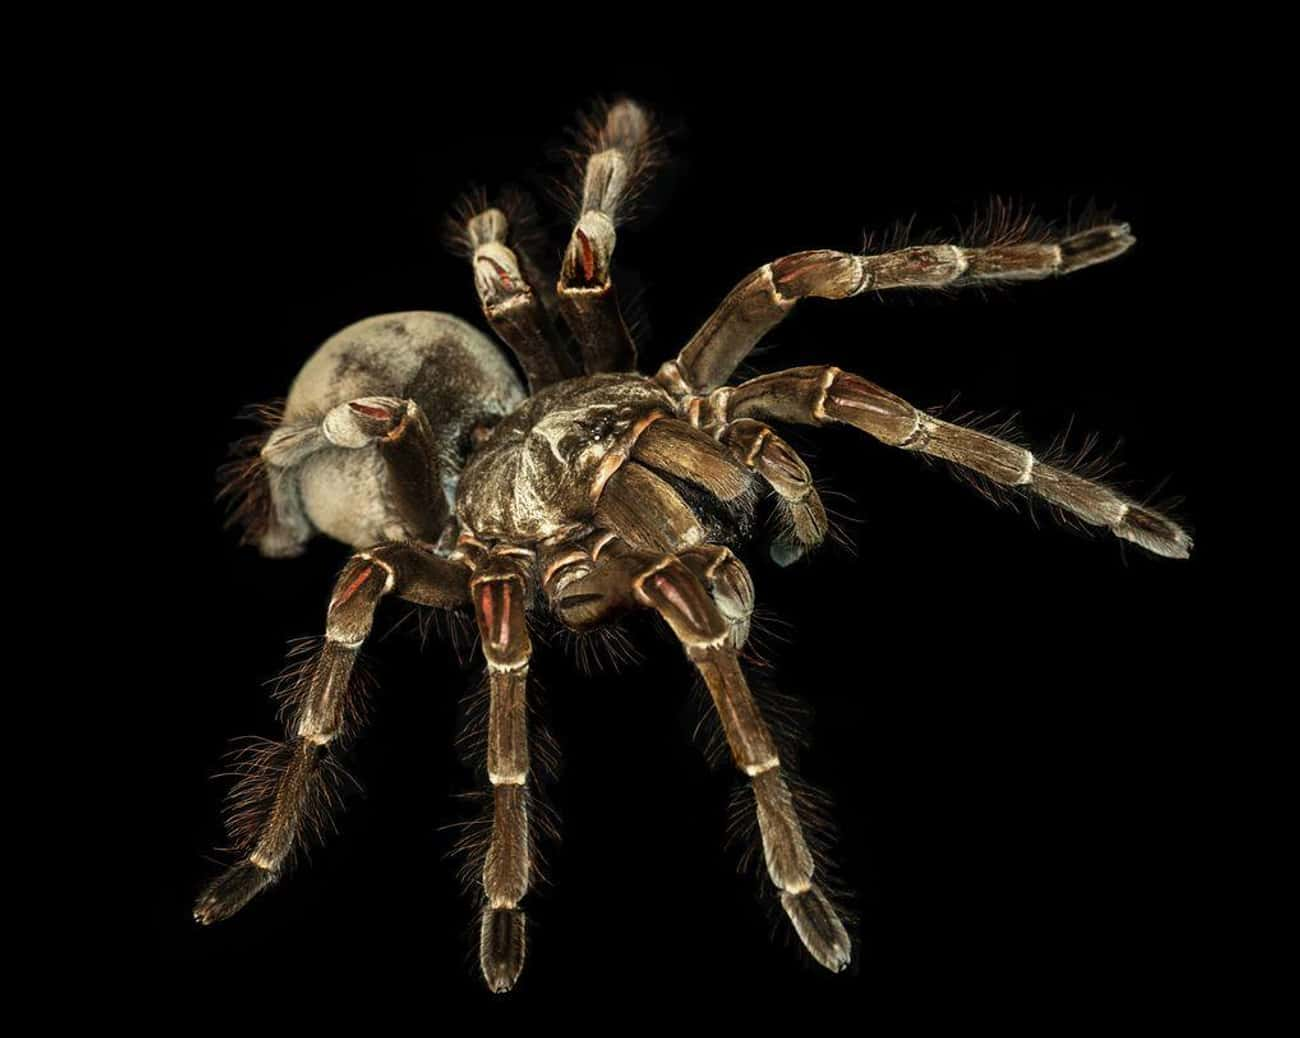 They Can Regenerate Lost Limbs is listed (or ranked) 2 on the list 12 Facts About The Goliath Birdeater, An Unexpectedly Gentle Giant